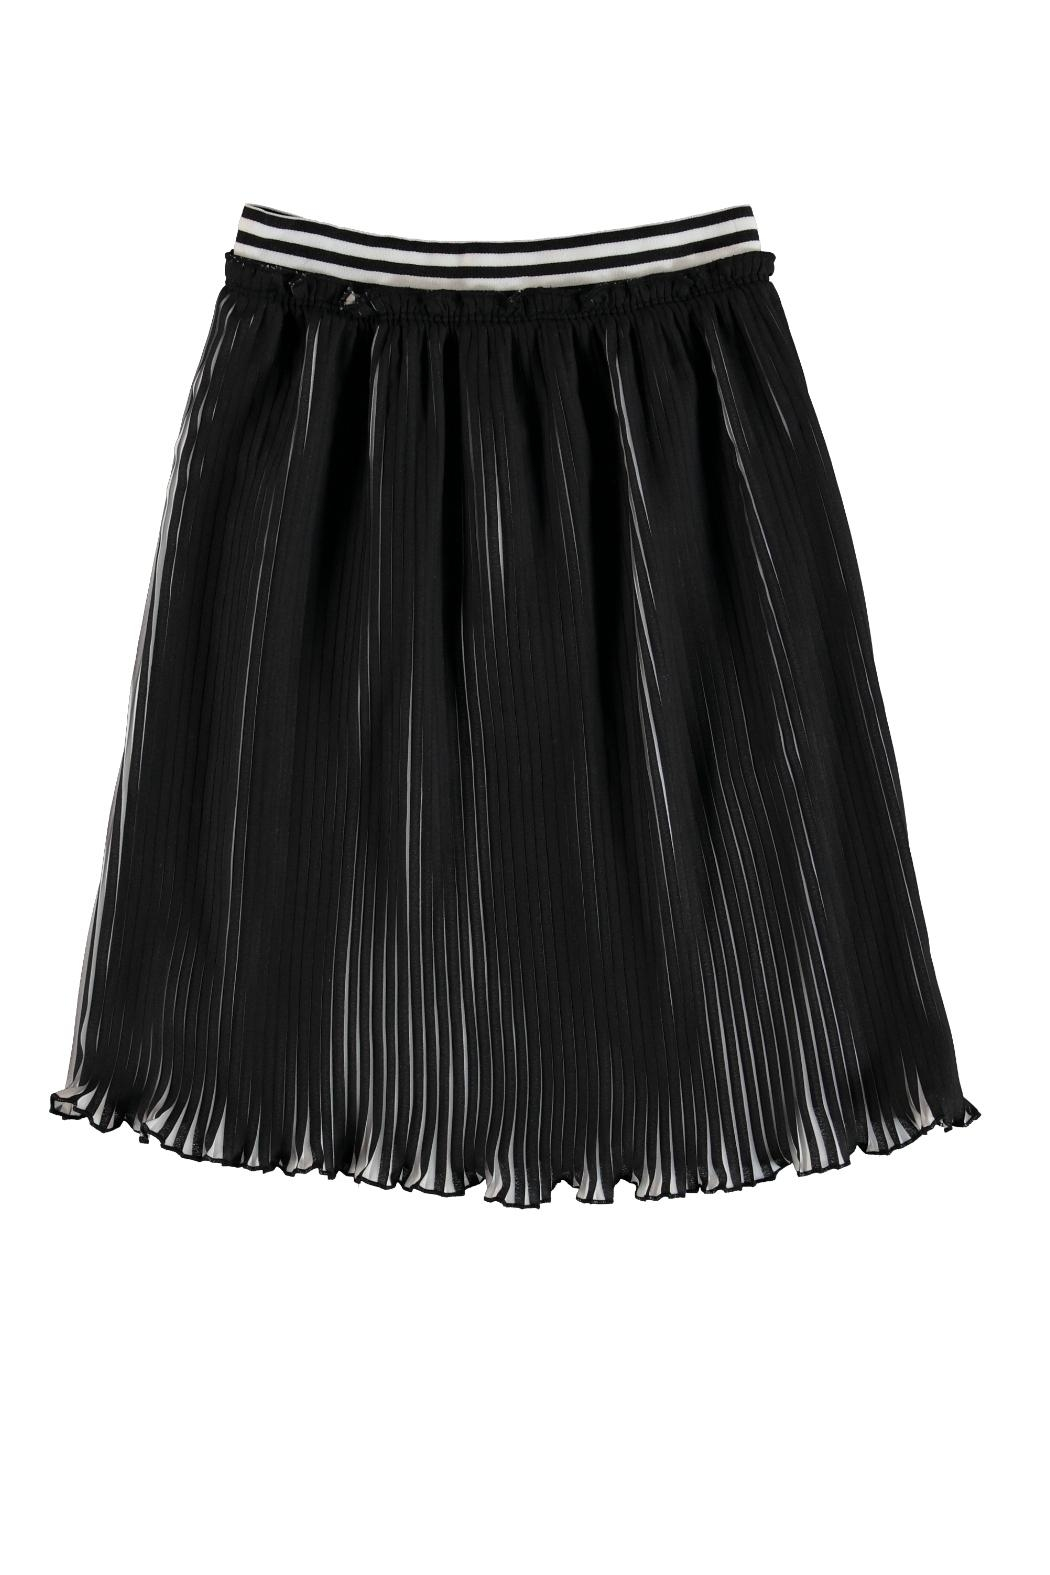 Molo Beatrix Skirt - Front Full Image